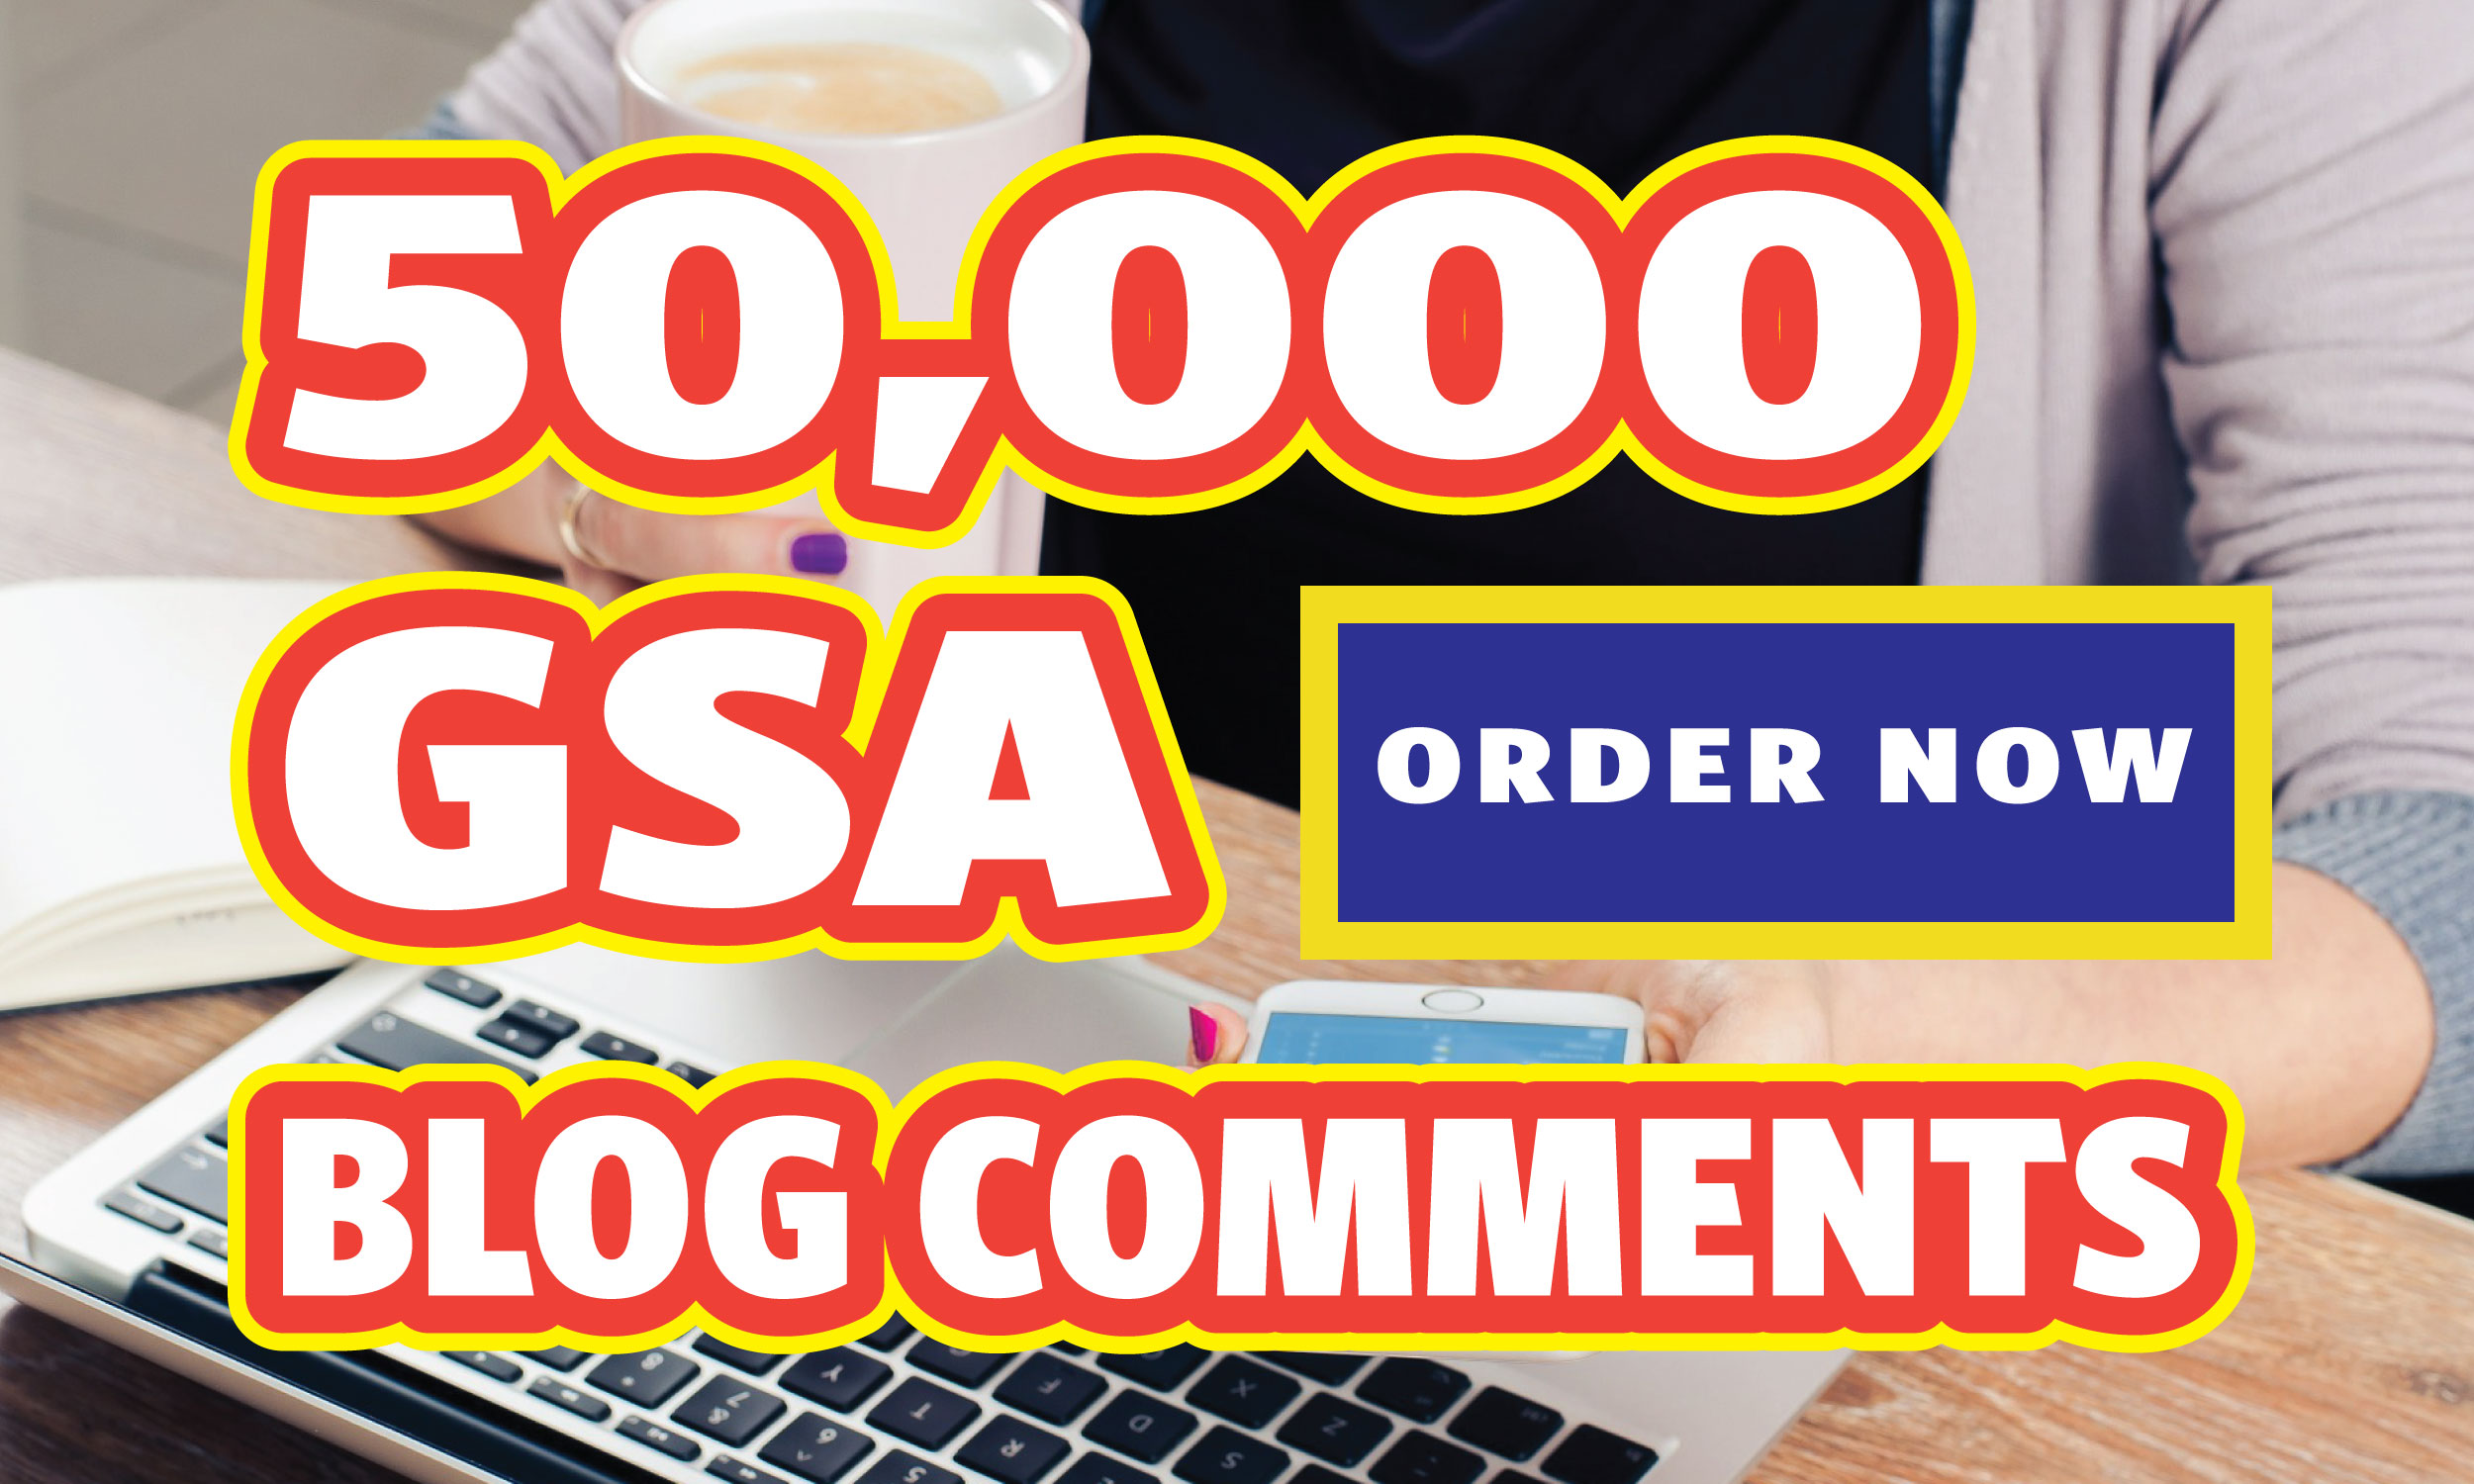 Special offer - 50,000 high quality Dofollow Gsa Blog Comments Backlinks For Website Ranking